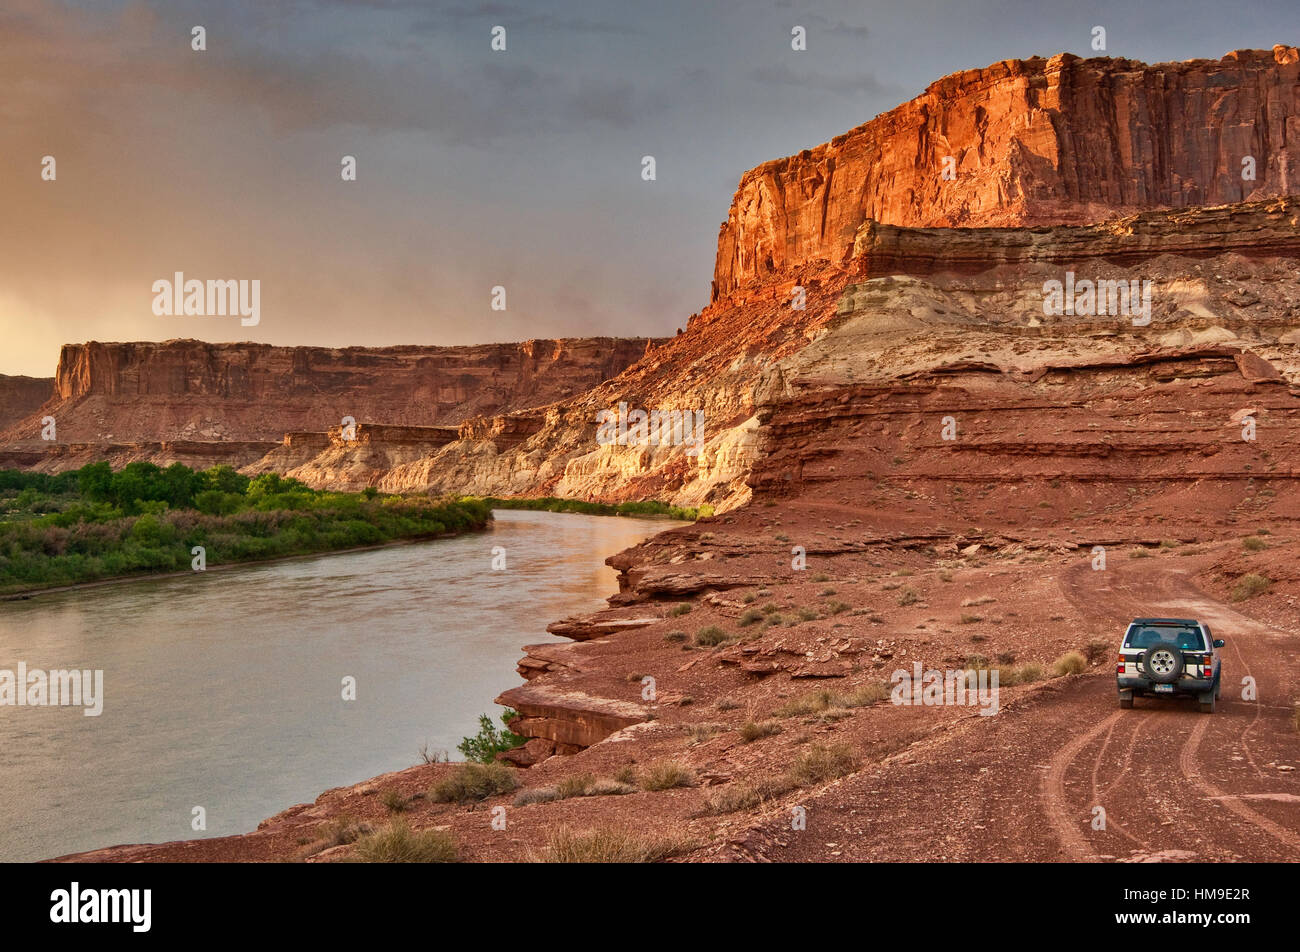 Vehicle in Labirynth Canyon, Green River, view from Labirynth Camp at sunset, White Rim Road, Canyonlands National - Stock Image